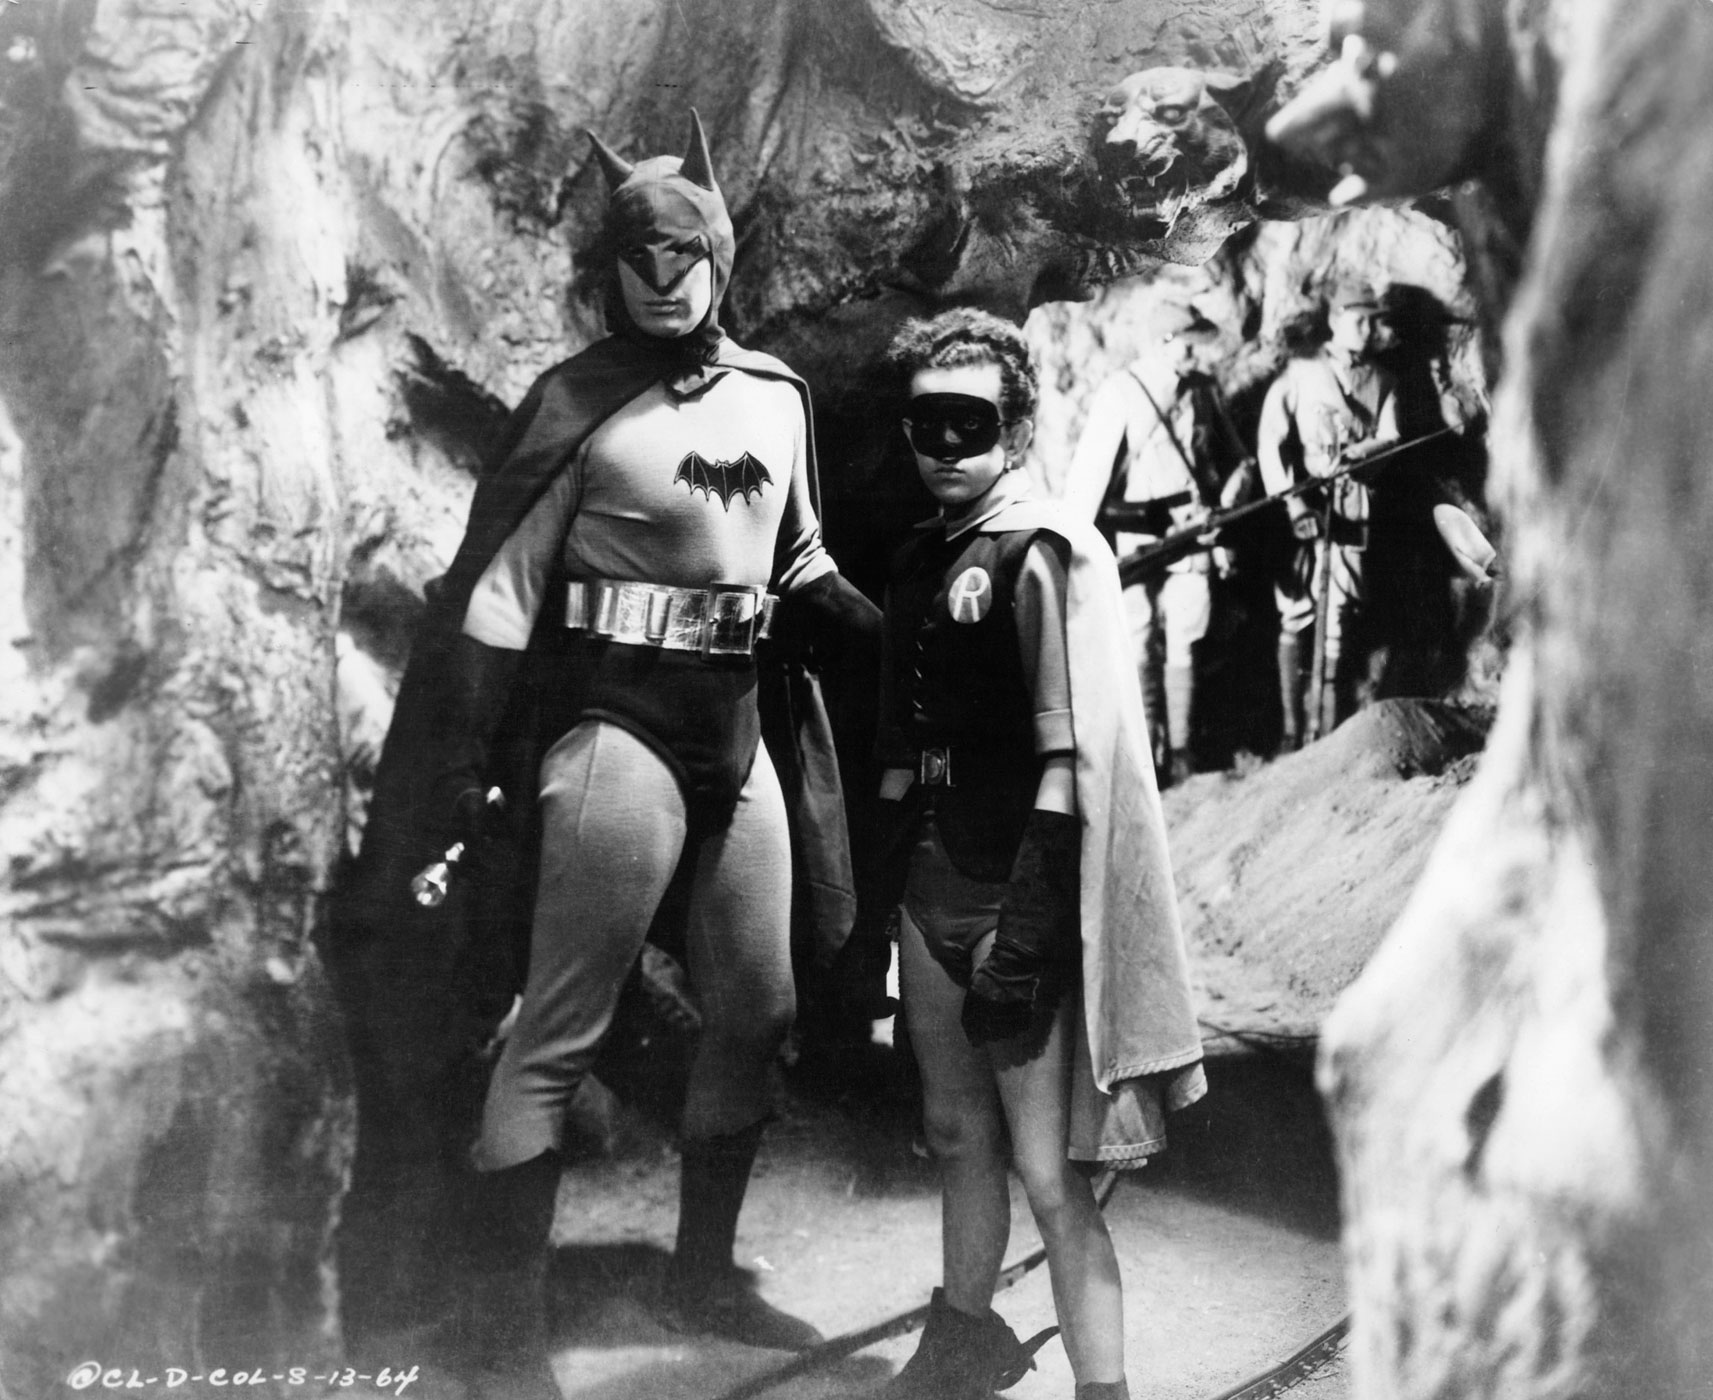 Lewis Wilson was the first actor to play Batman on screen, with Douglas Croft joining him as the first Robin in the 1943 film <i>Batman</i>.